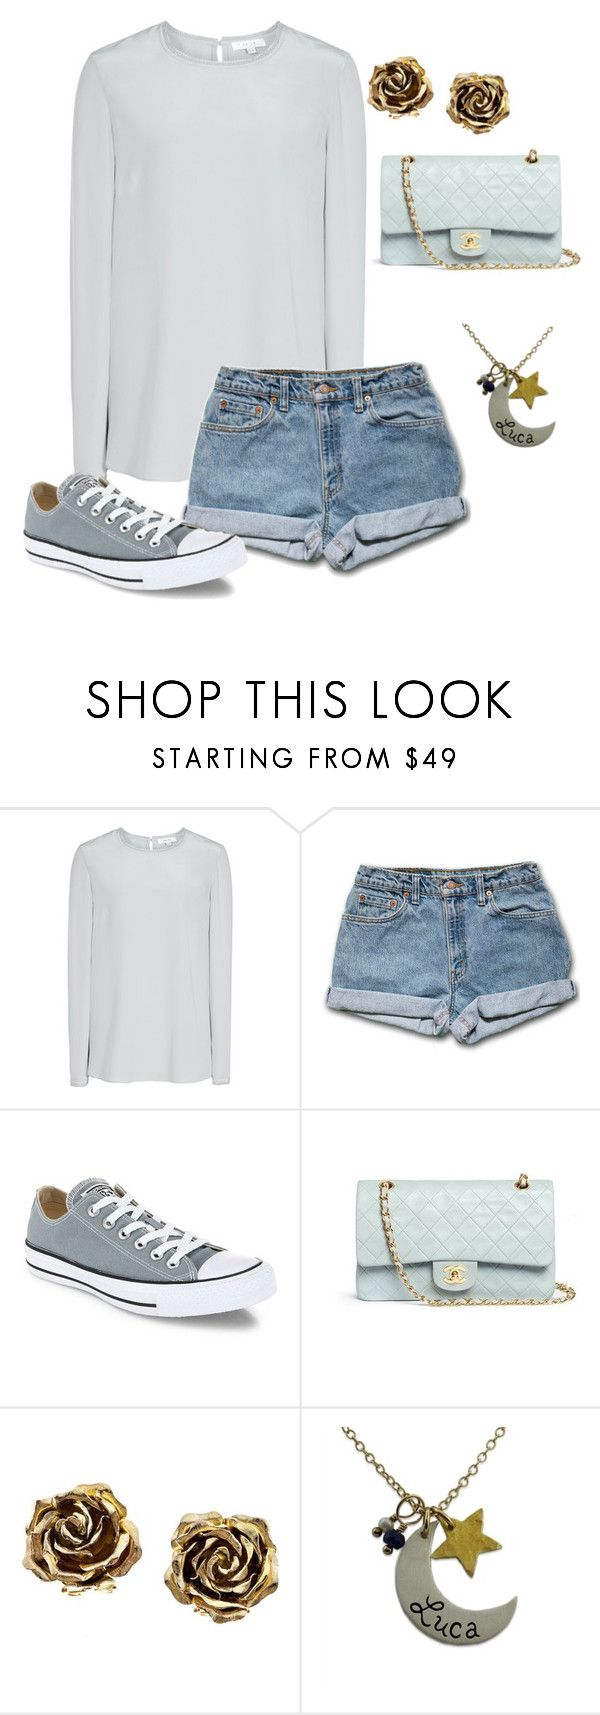 """Untitled #567"" by dauntless-darling ❤ liked on Polyvore featuring Converse, Chanel and Tiffany & Co."